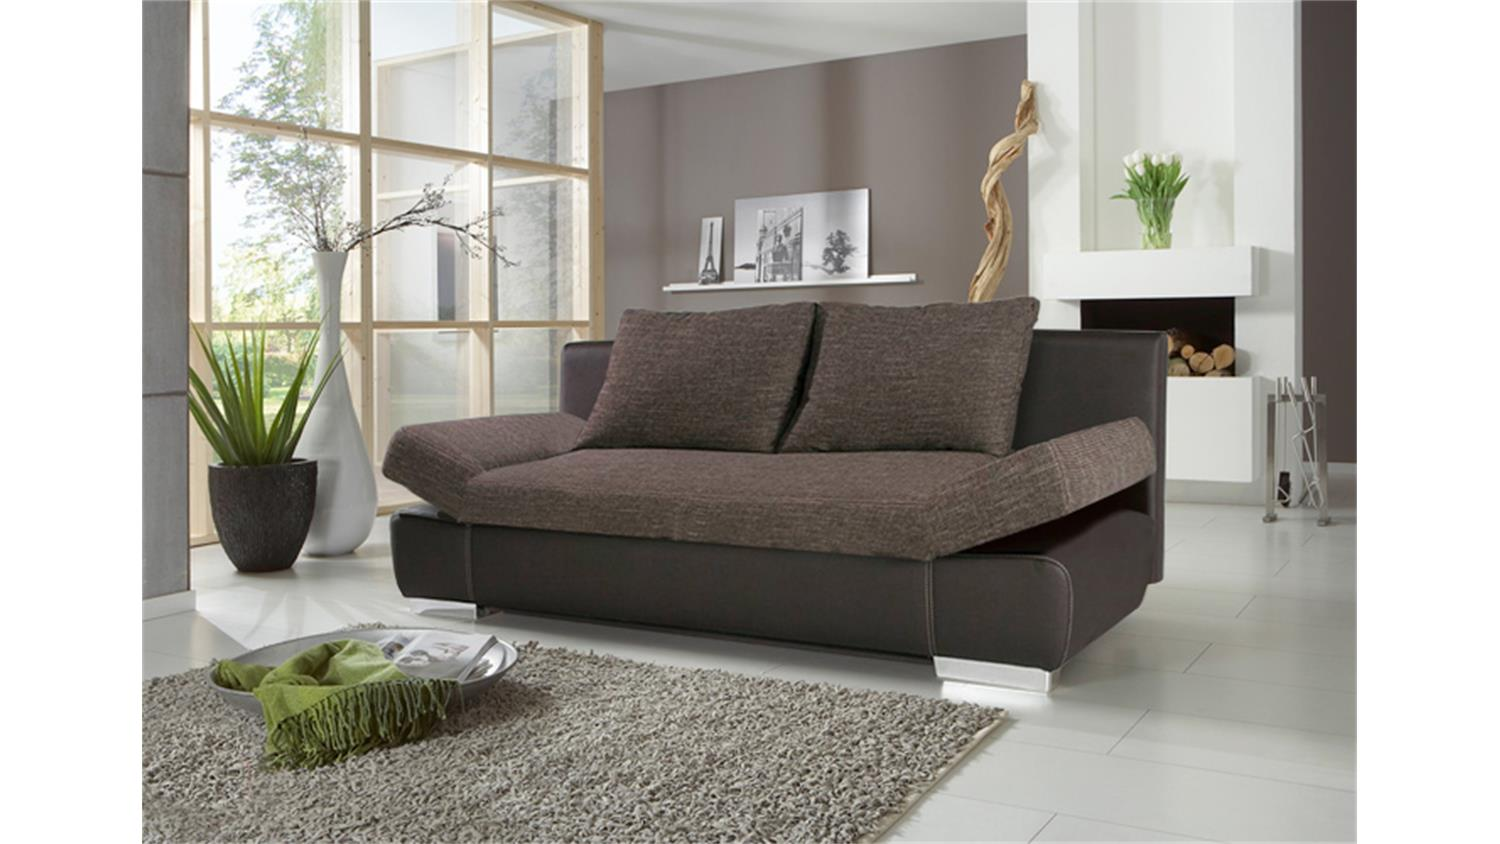 schlafsofa joker sofa braun mit bettkasten und chromf en. Black Bedroom Furniture Sets. Home Design Ideas